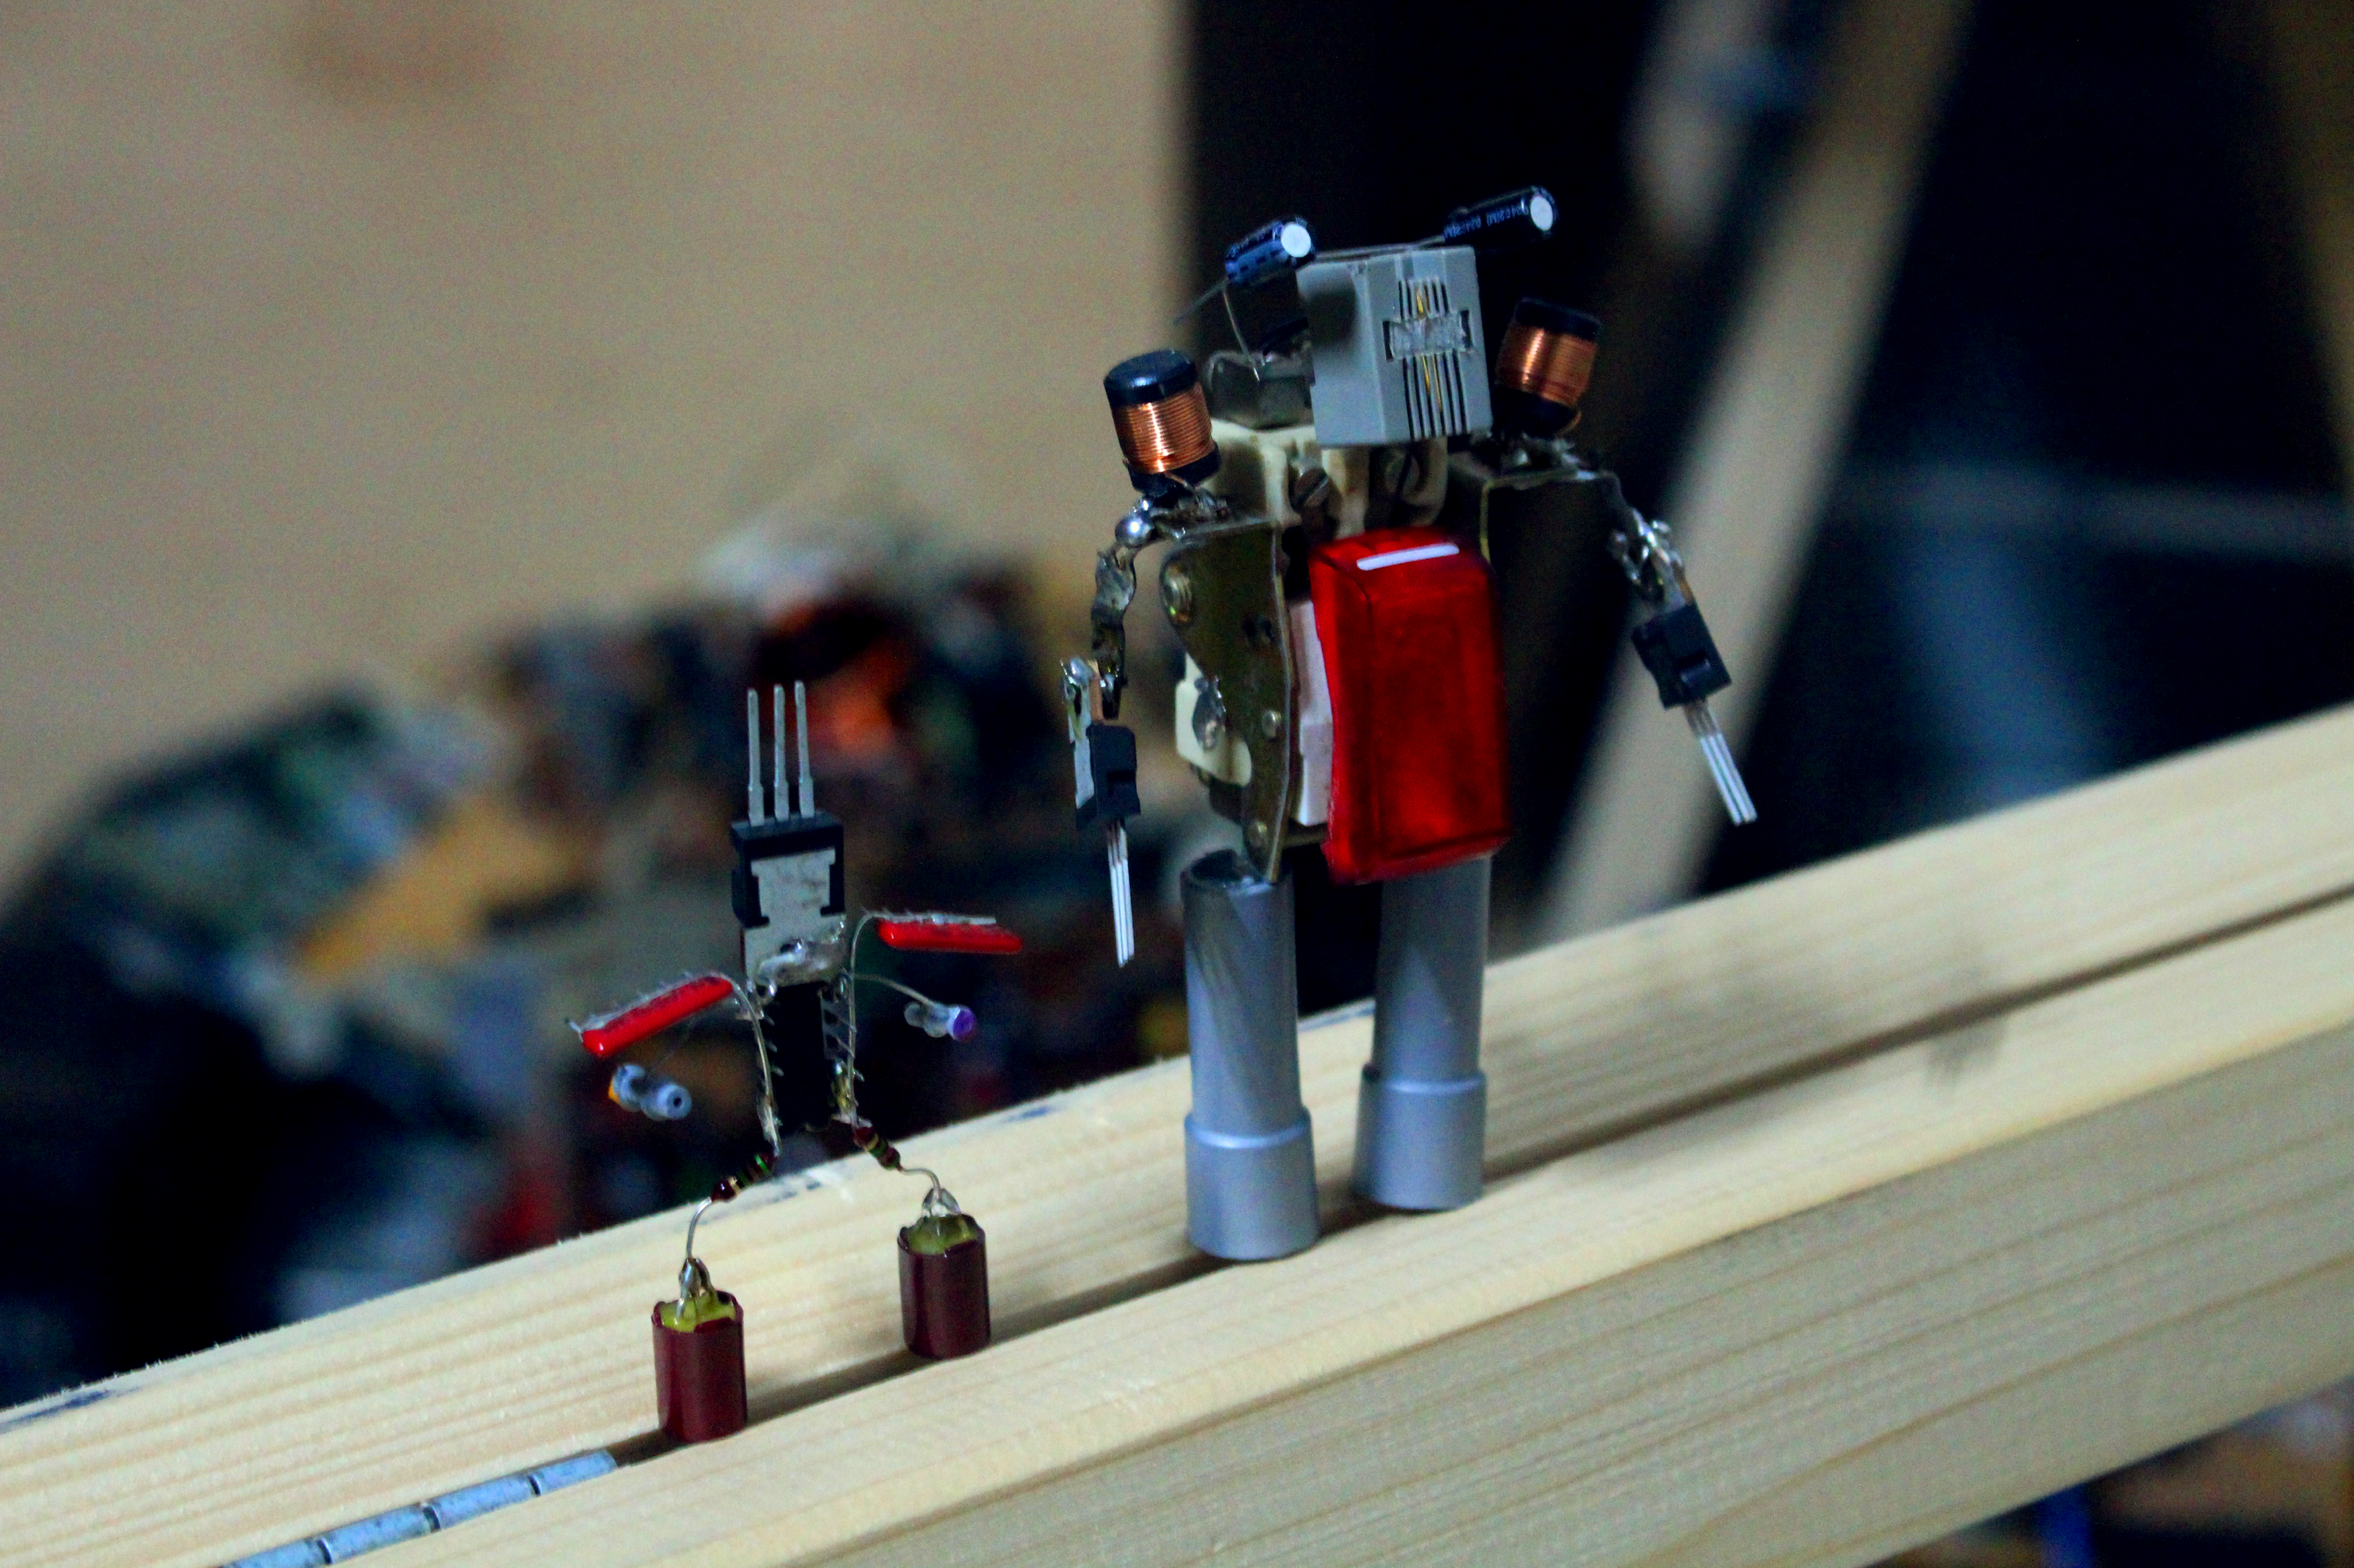 On a timber there are standing two little robots that are soldered together out of electronic scrap.